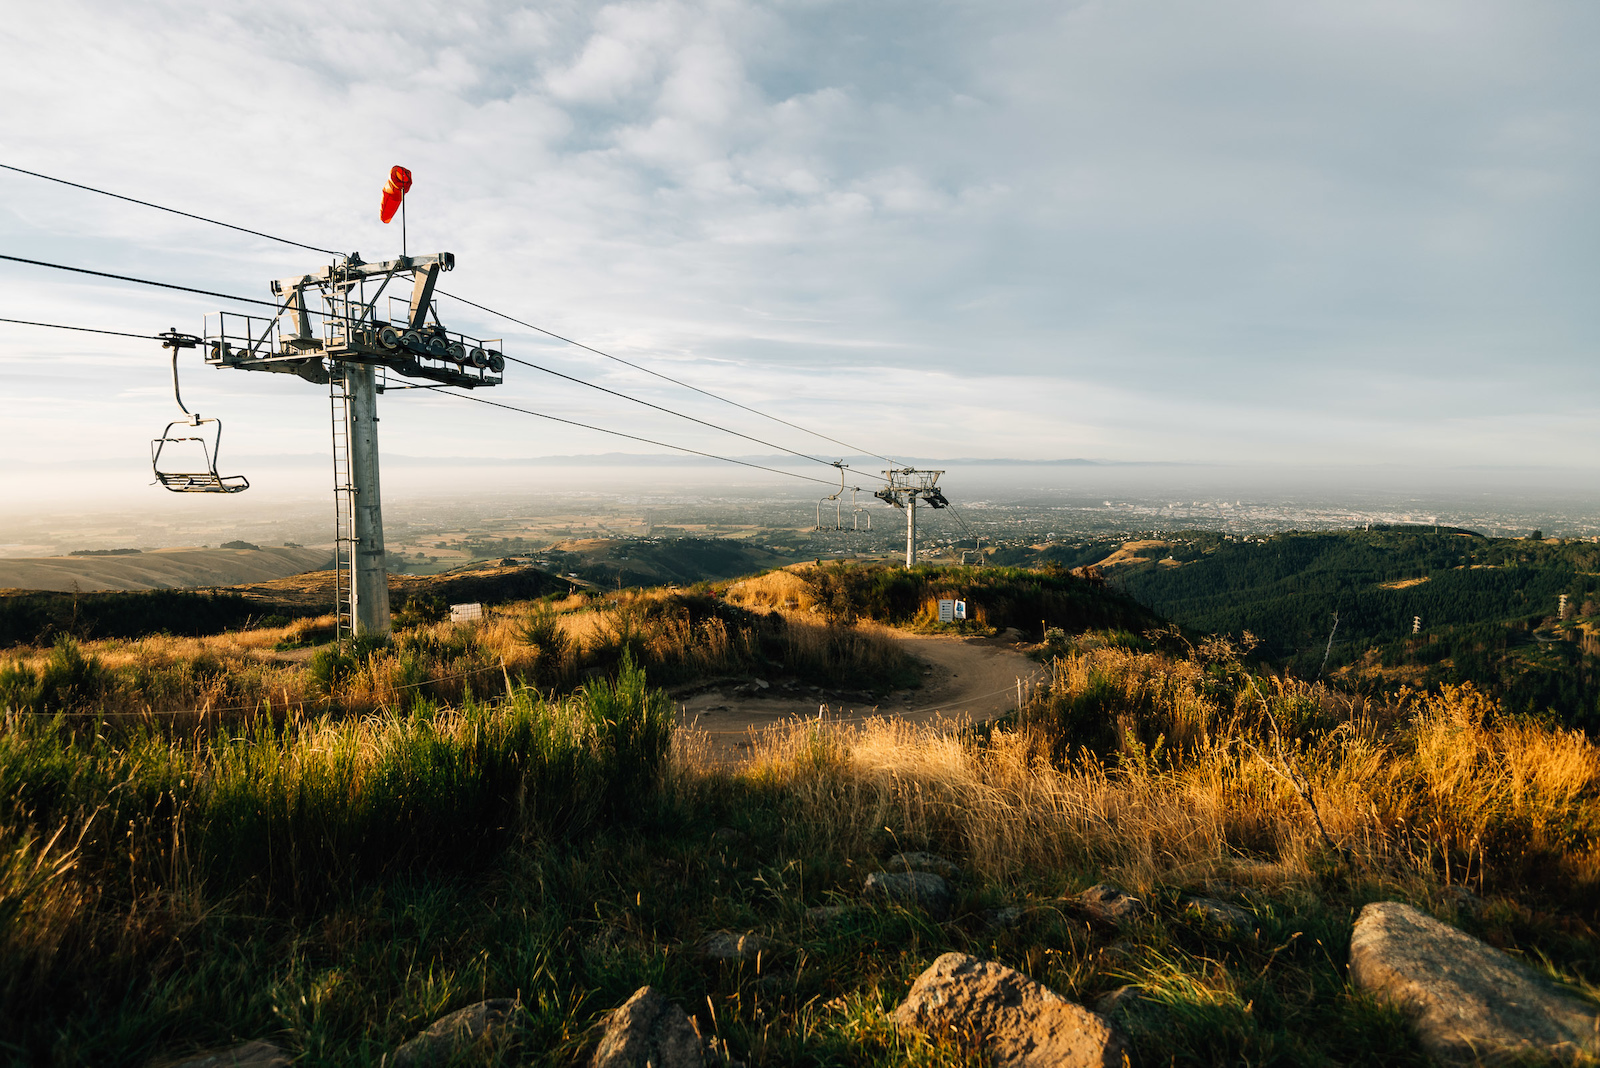 The view out to the city from the top station of the chairlift.